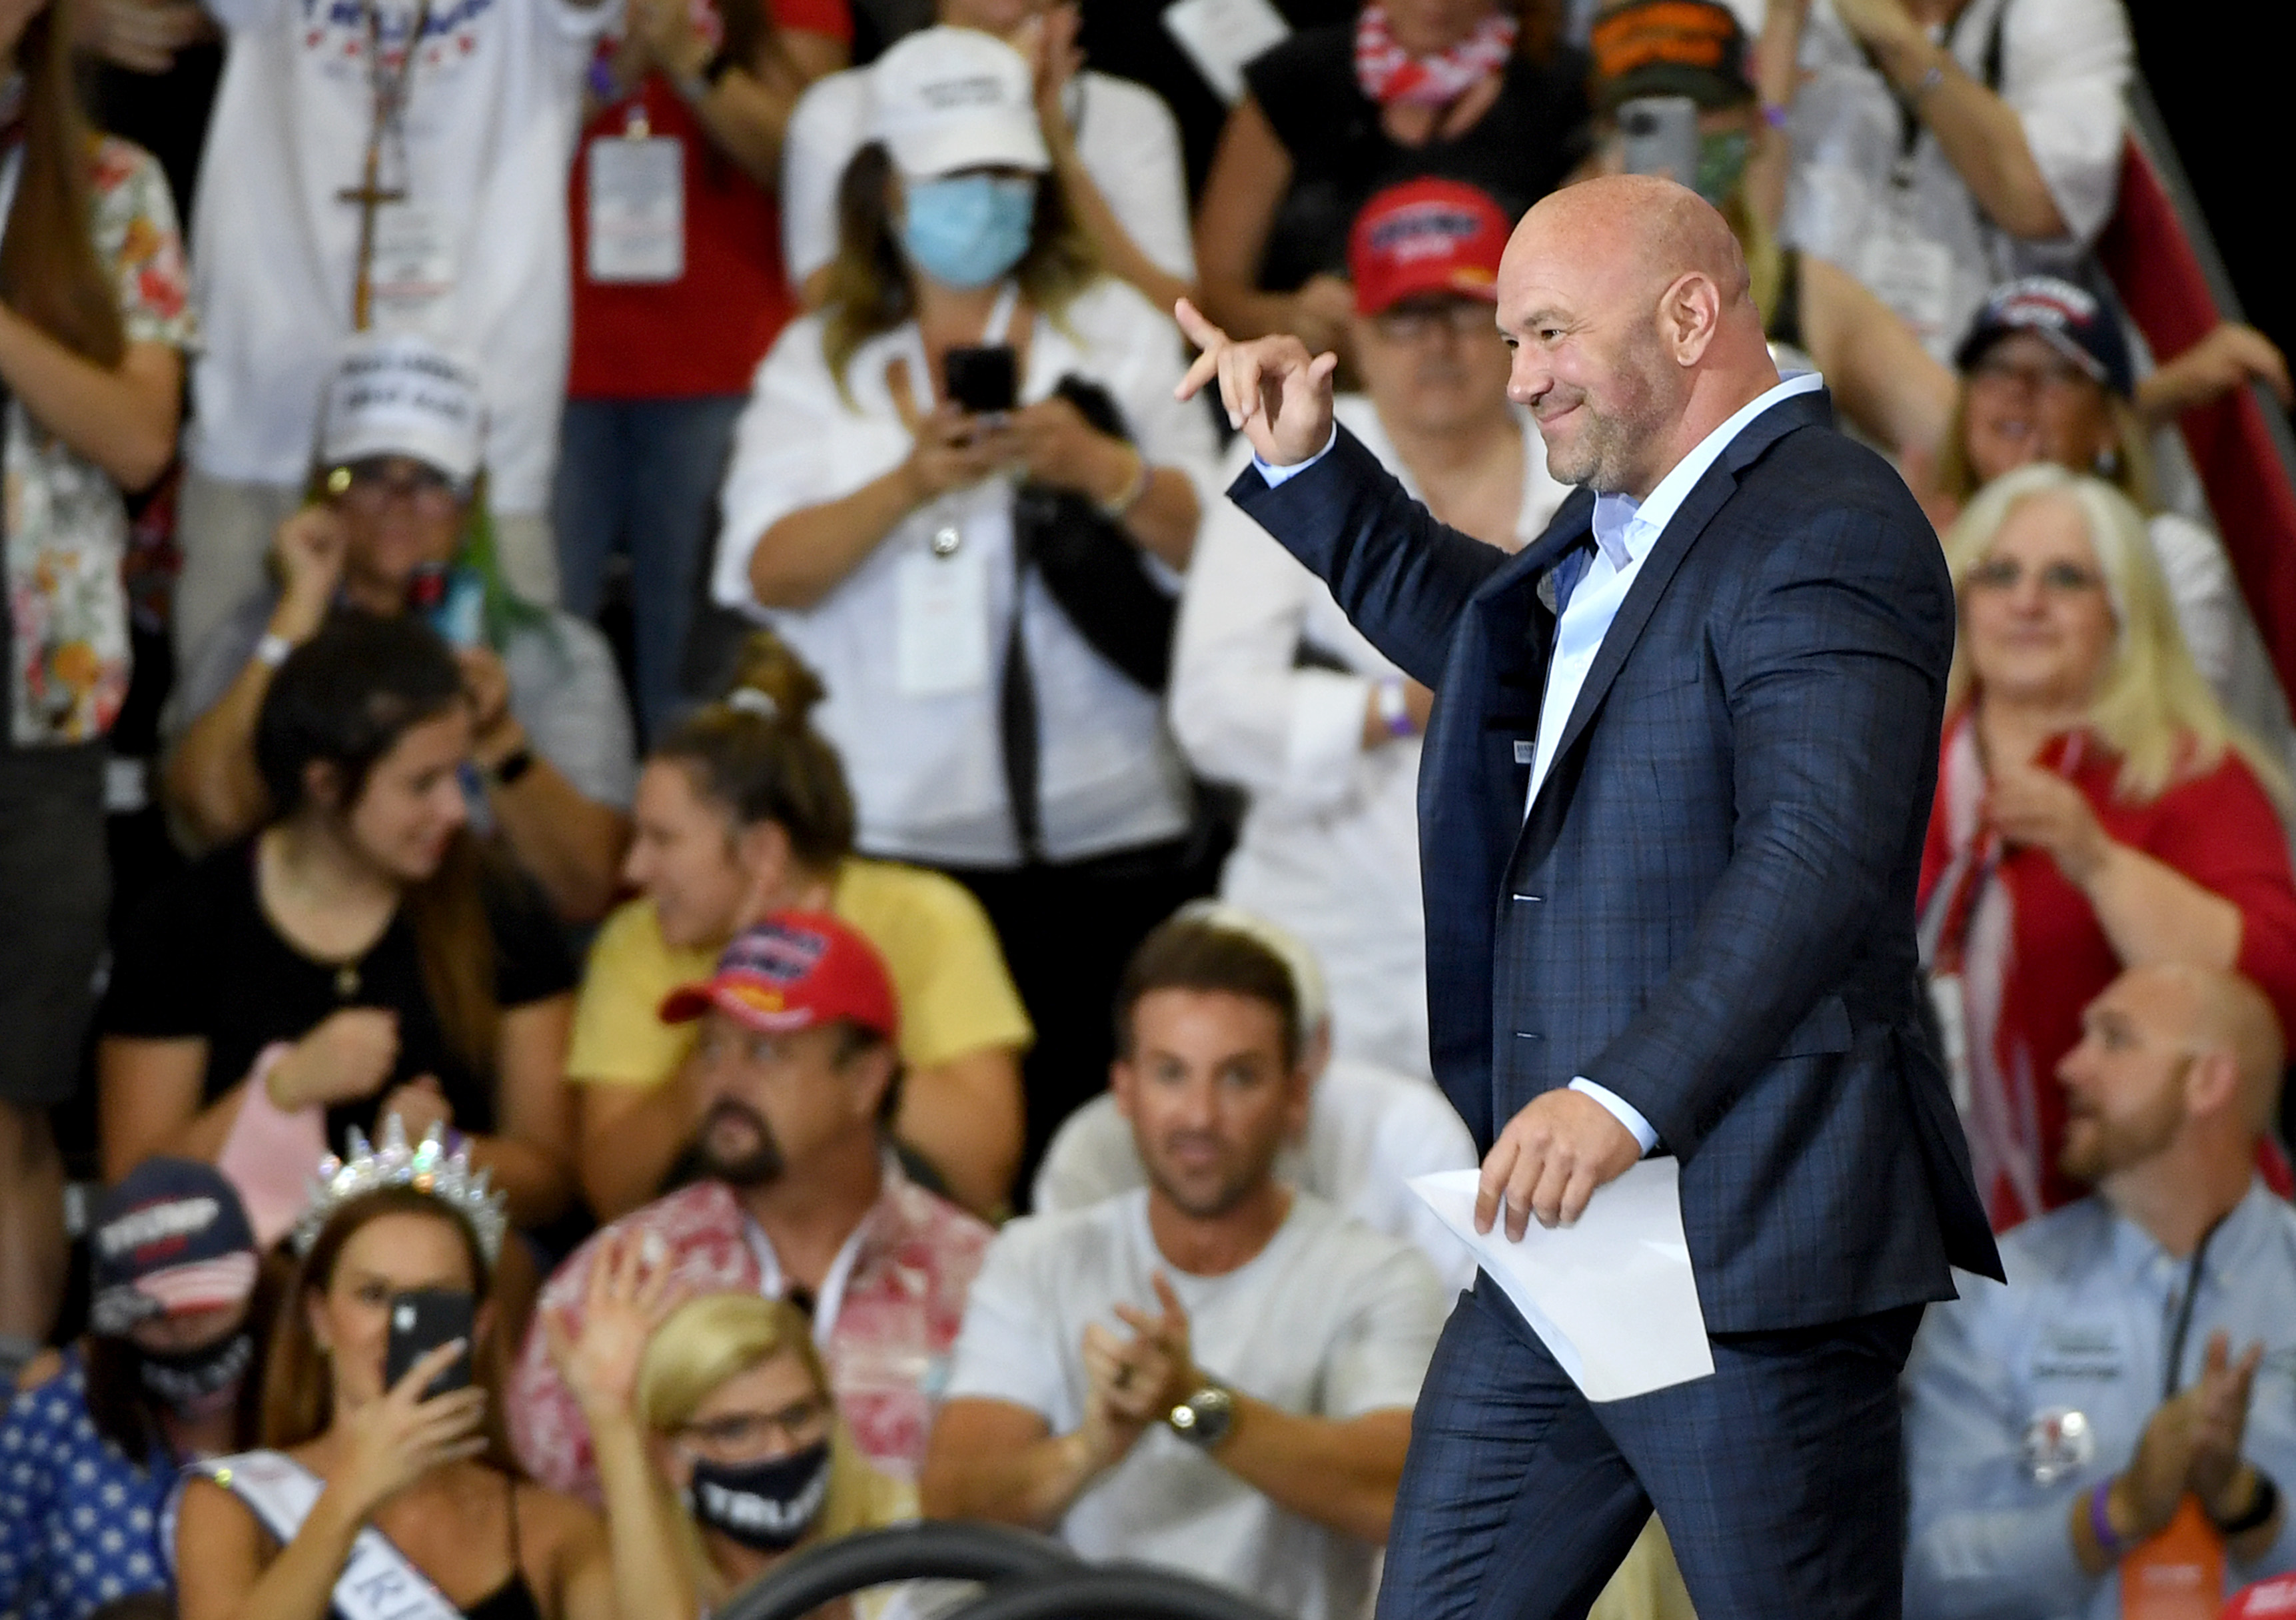 Dana White Blasts Jake Paul During Expletive-Filled Rant Ahead of UFC 261